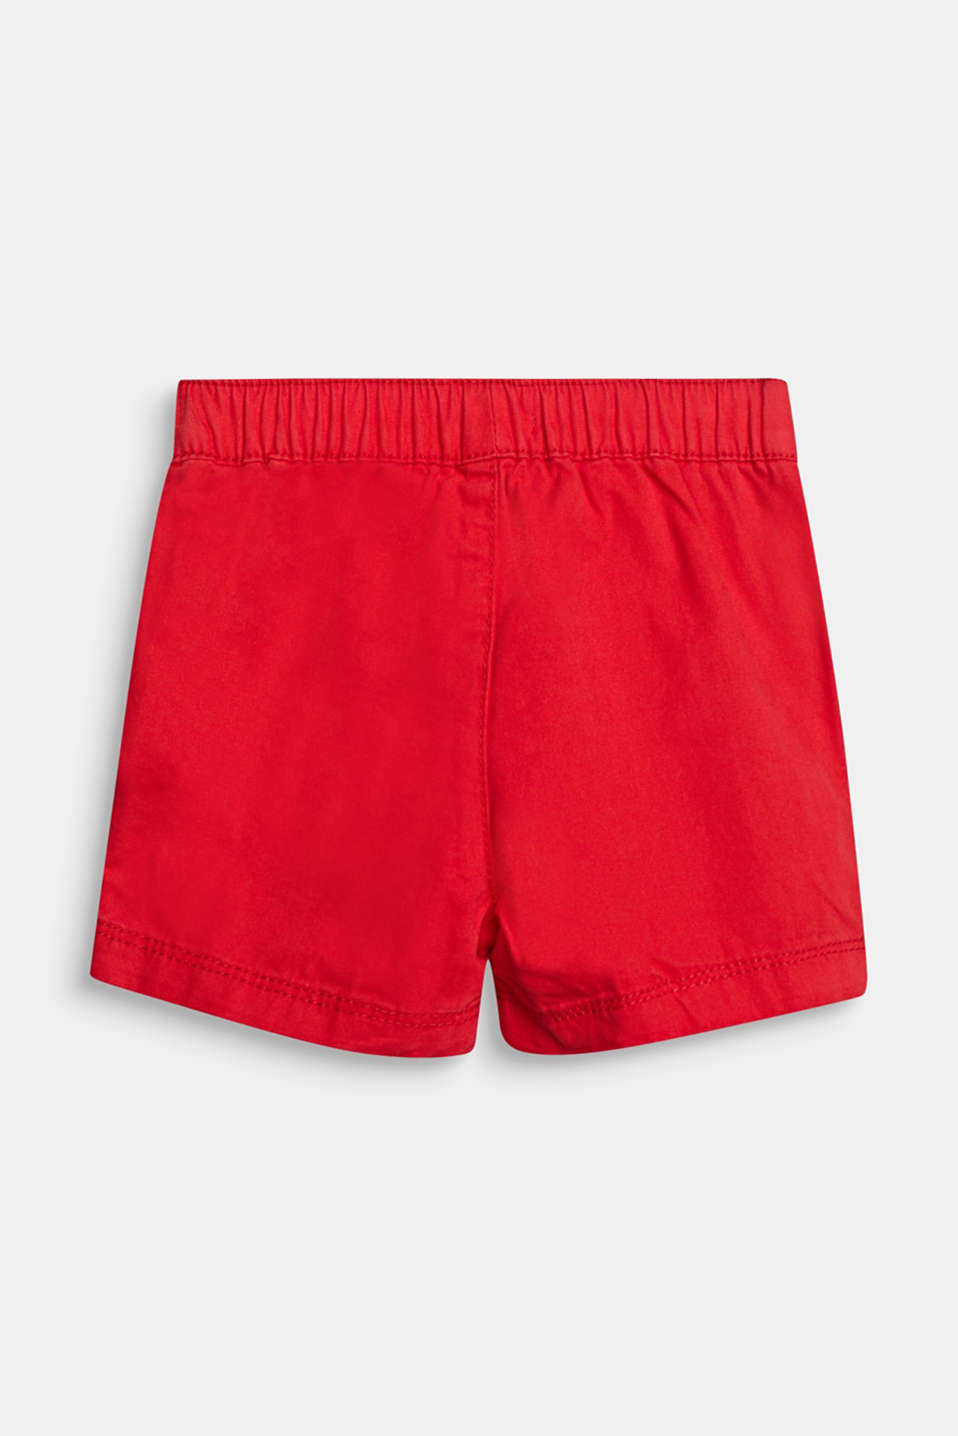 Woven shorts in 100% cotton, LCRED, detail image number 2